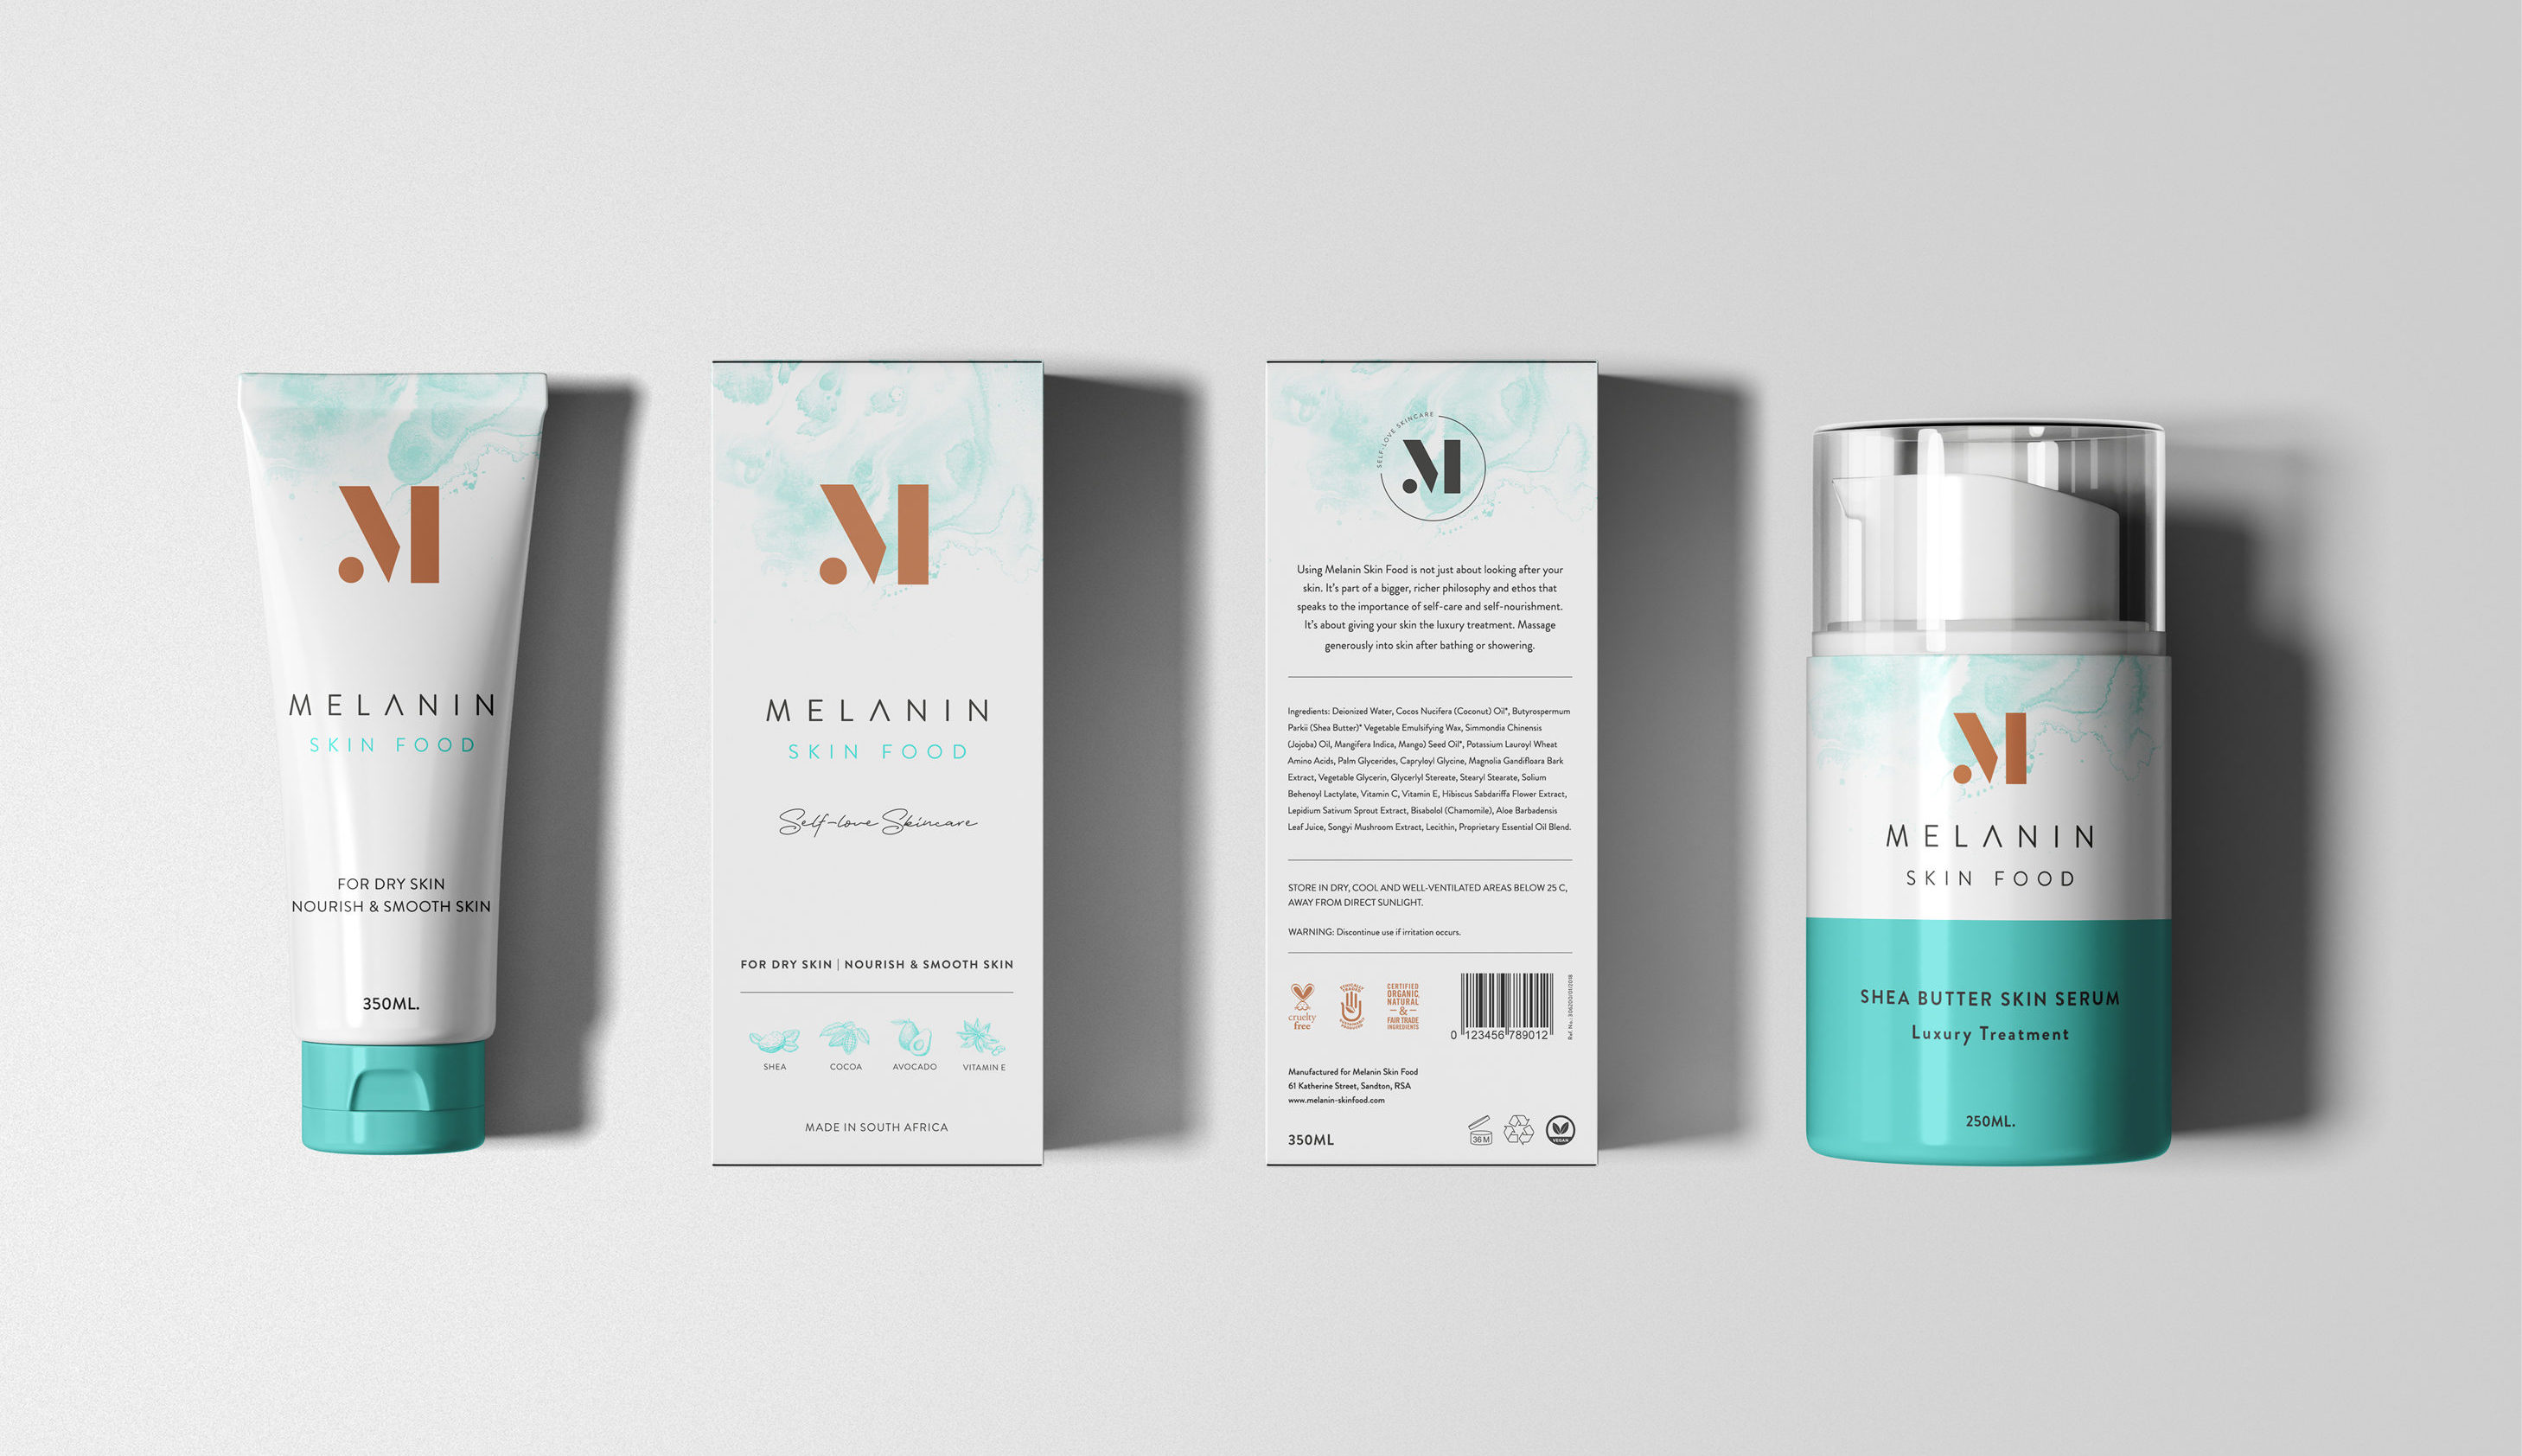 Melanin Skin Food Packaging Design